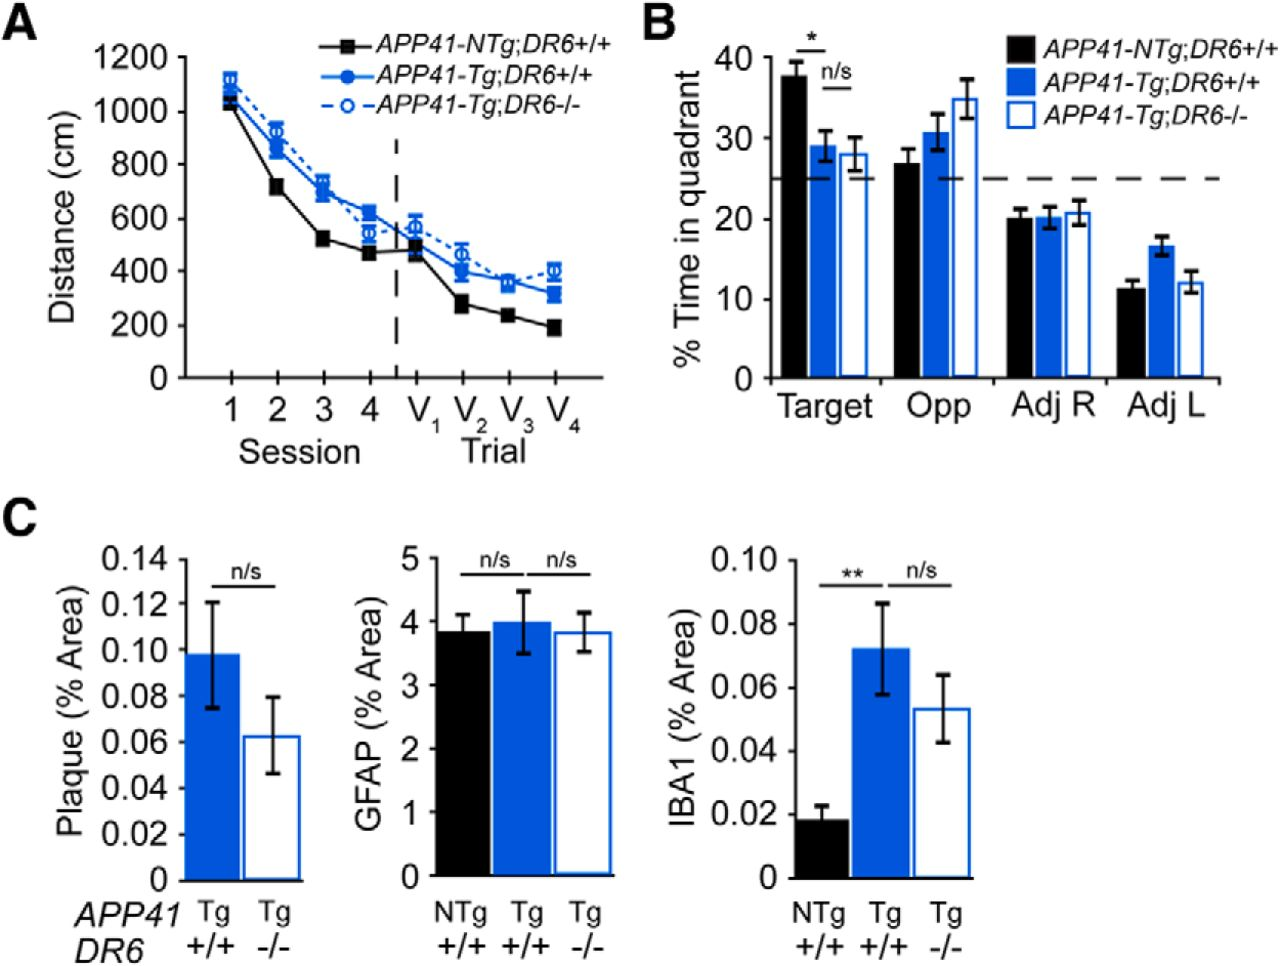 A Death Receptor 6 Amyloid Precursor Protein Pathway Regulates Light Laser Led Gt Circuits Running Message Board Cd4017 Download Figure